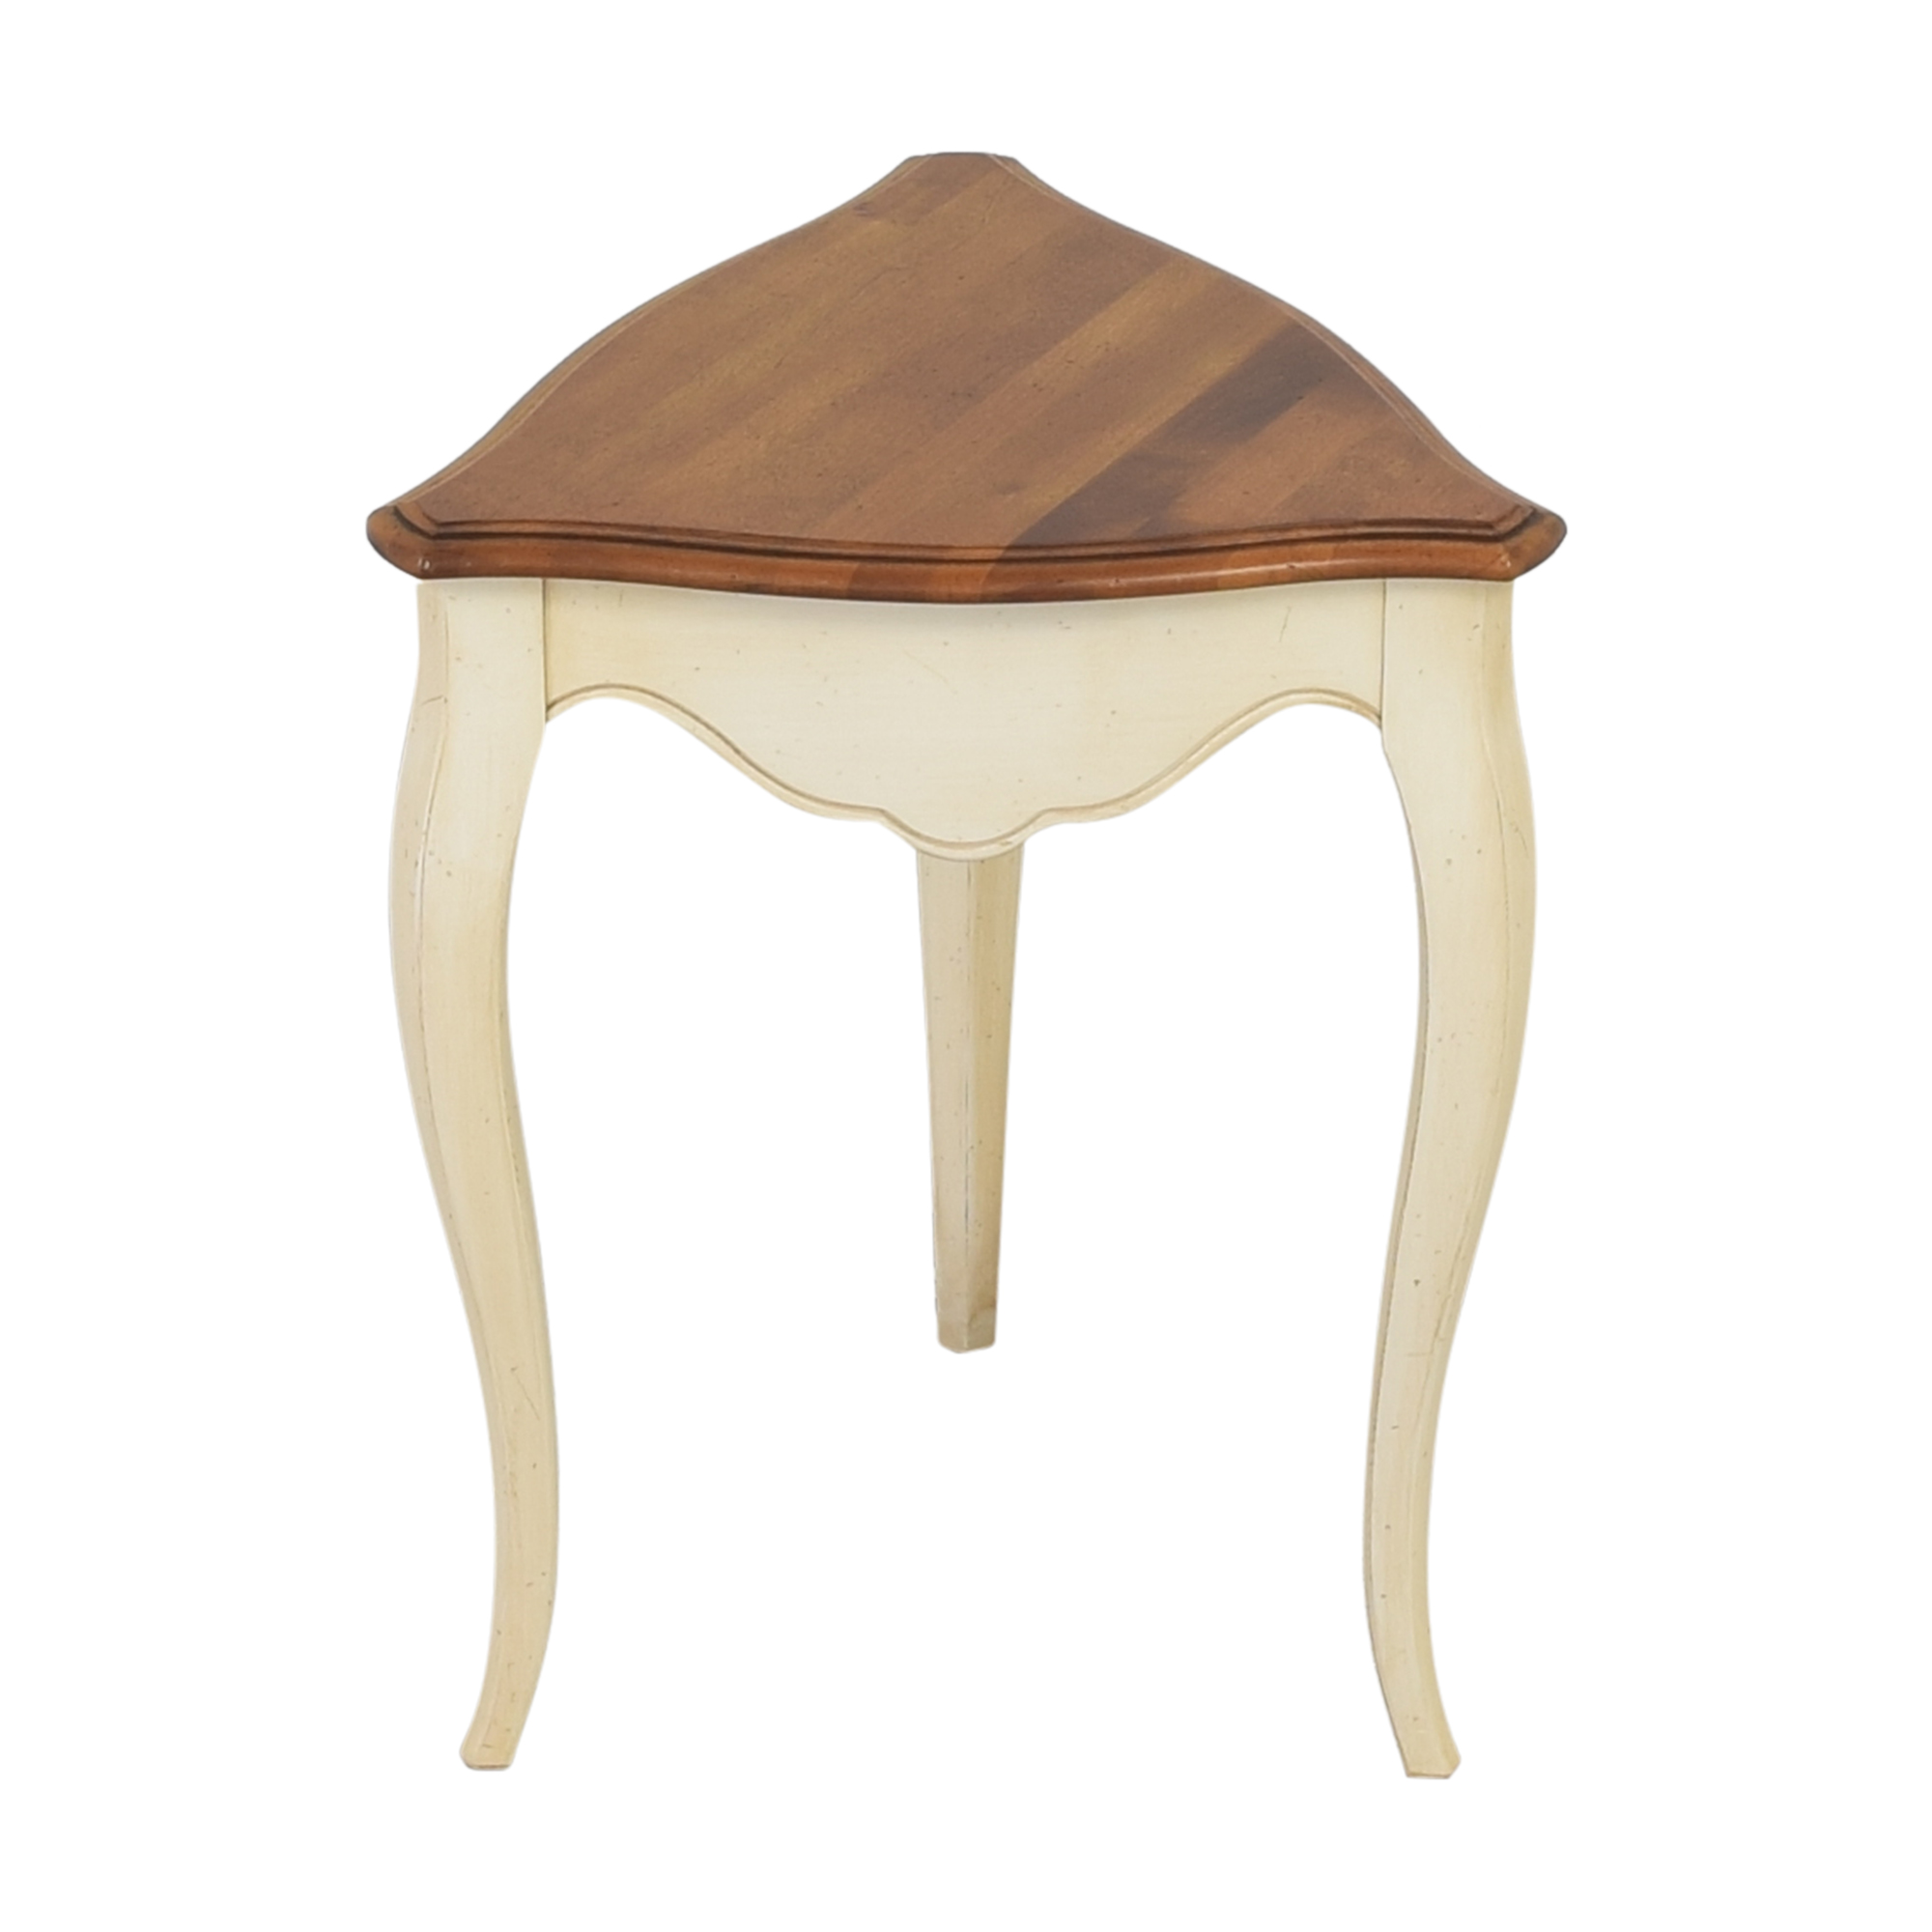 Ethan Allen Ethan Allen Occasional Table used